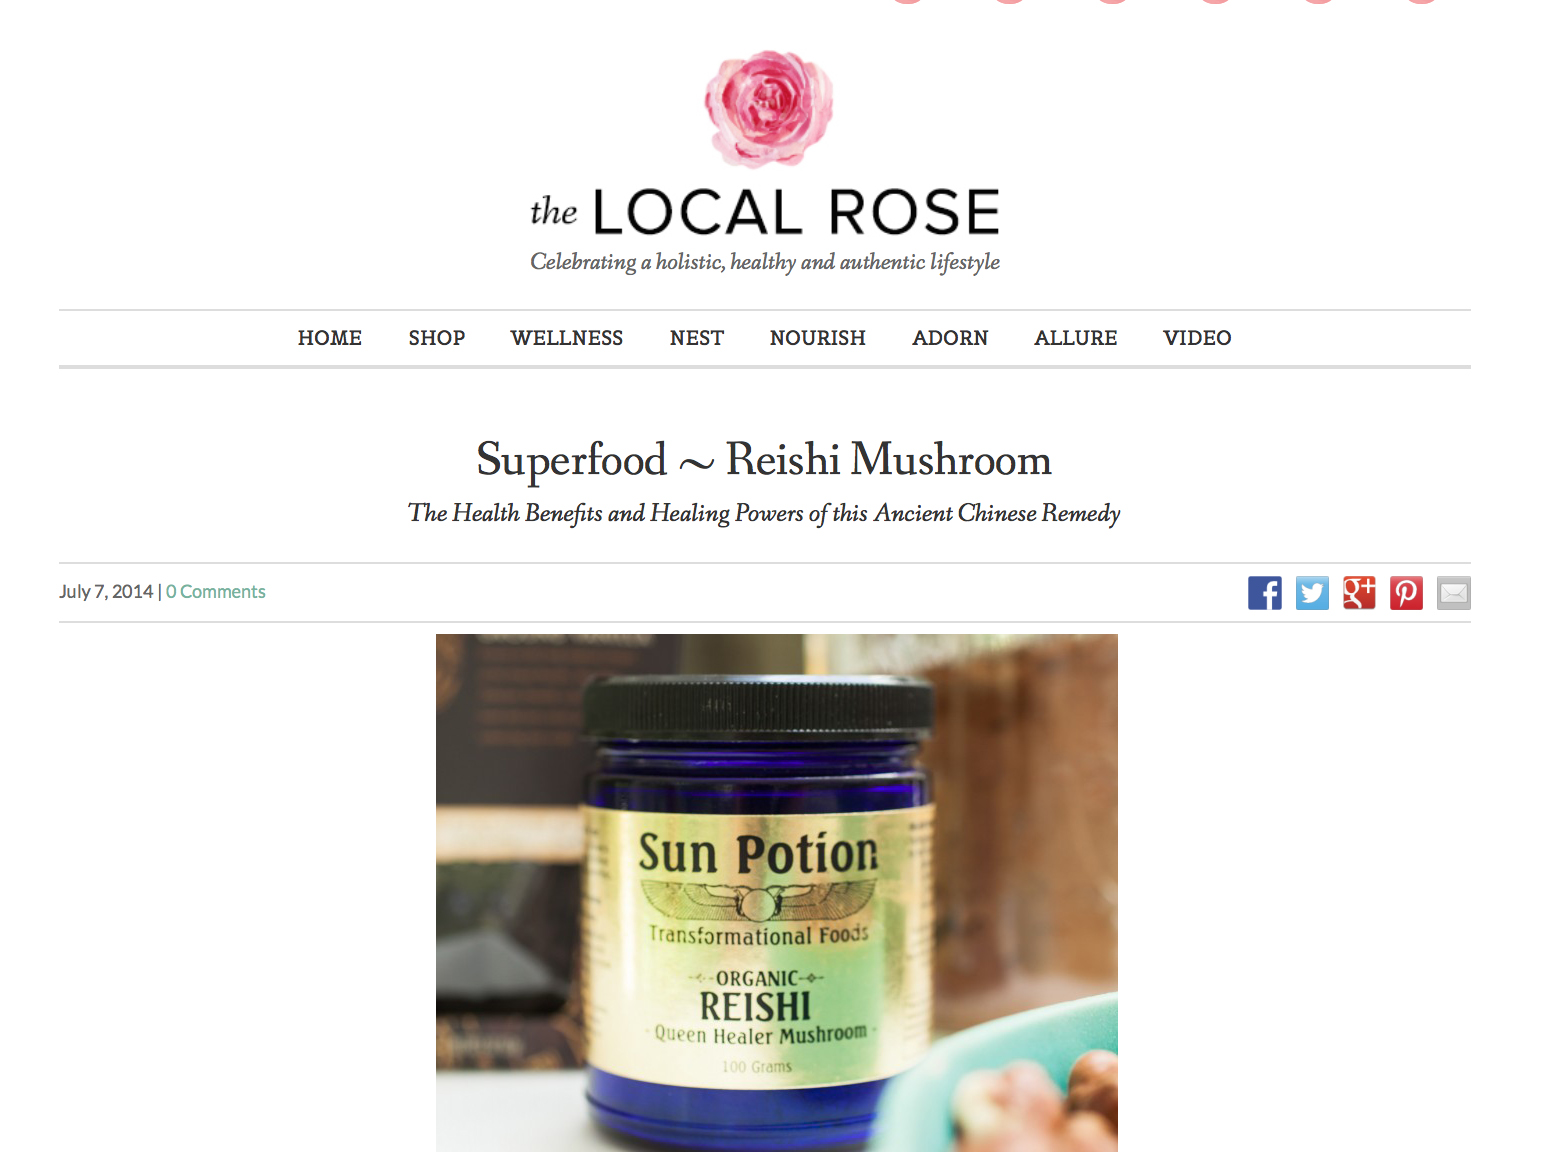 thelocalrose.com:tribe-health:superfood-highlight-reishi-mushroom:.jpg